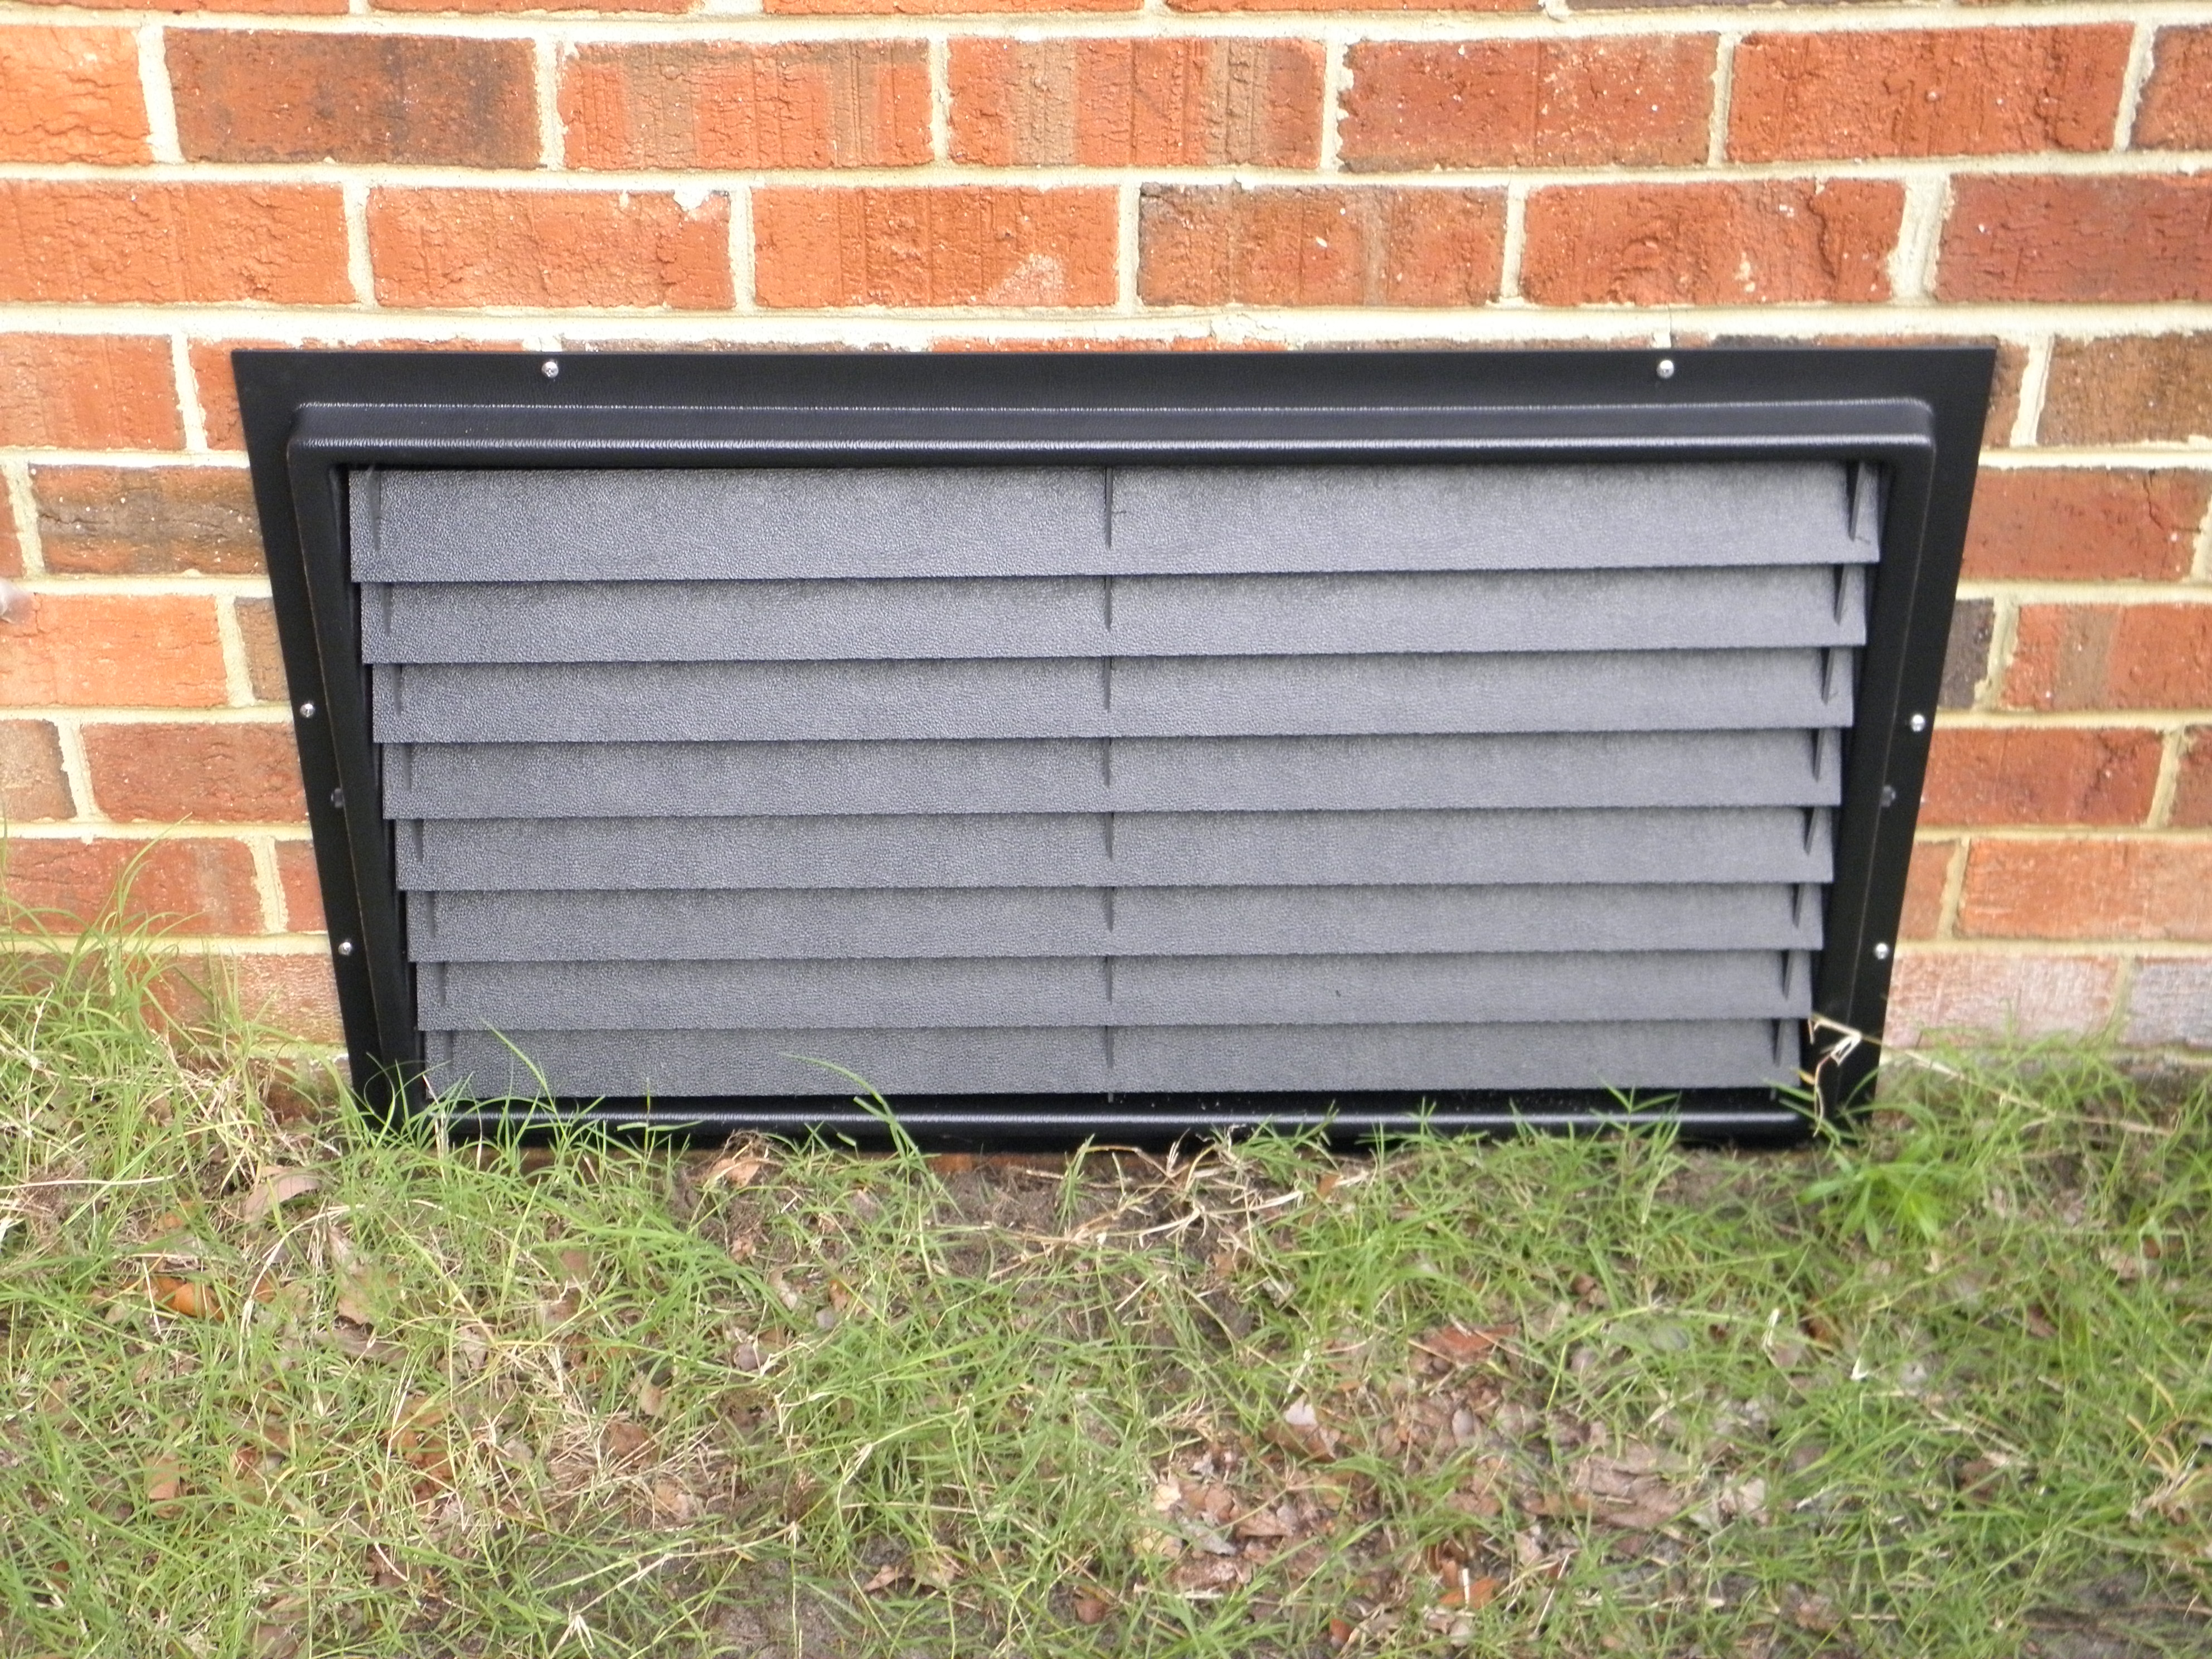 24x36 Crawlspace Door & Crawlspace Door | Vent - Crawl Space Door Systems